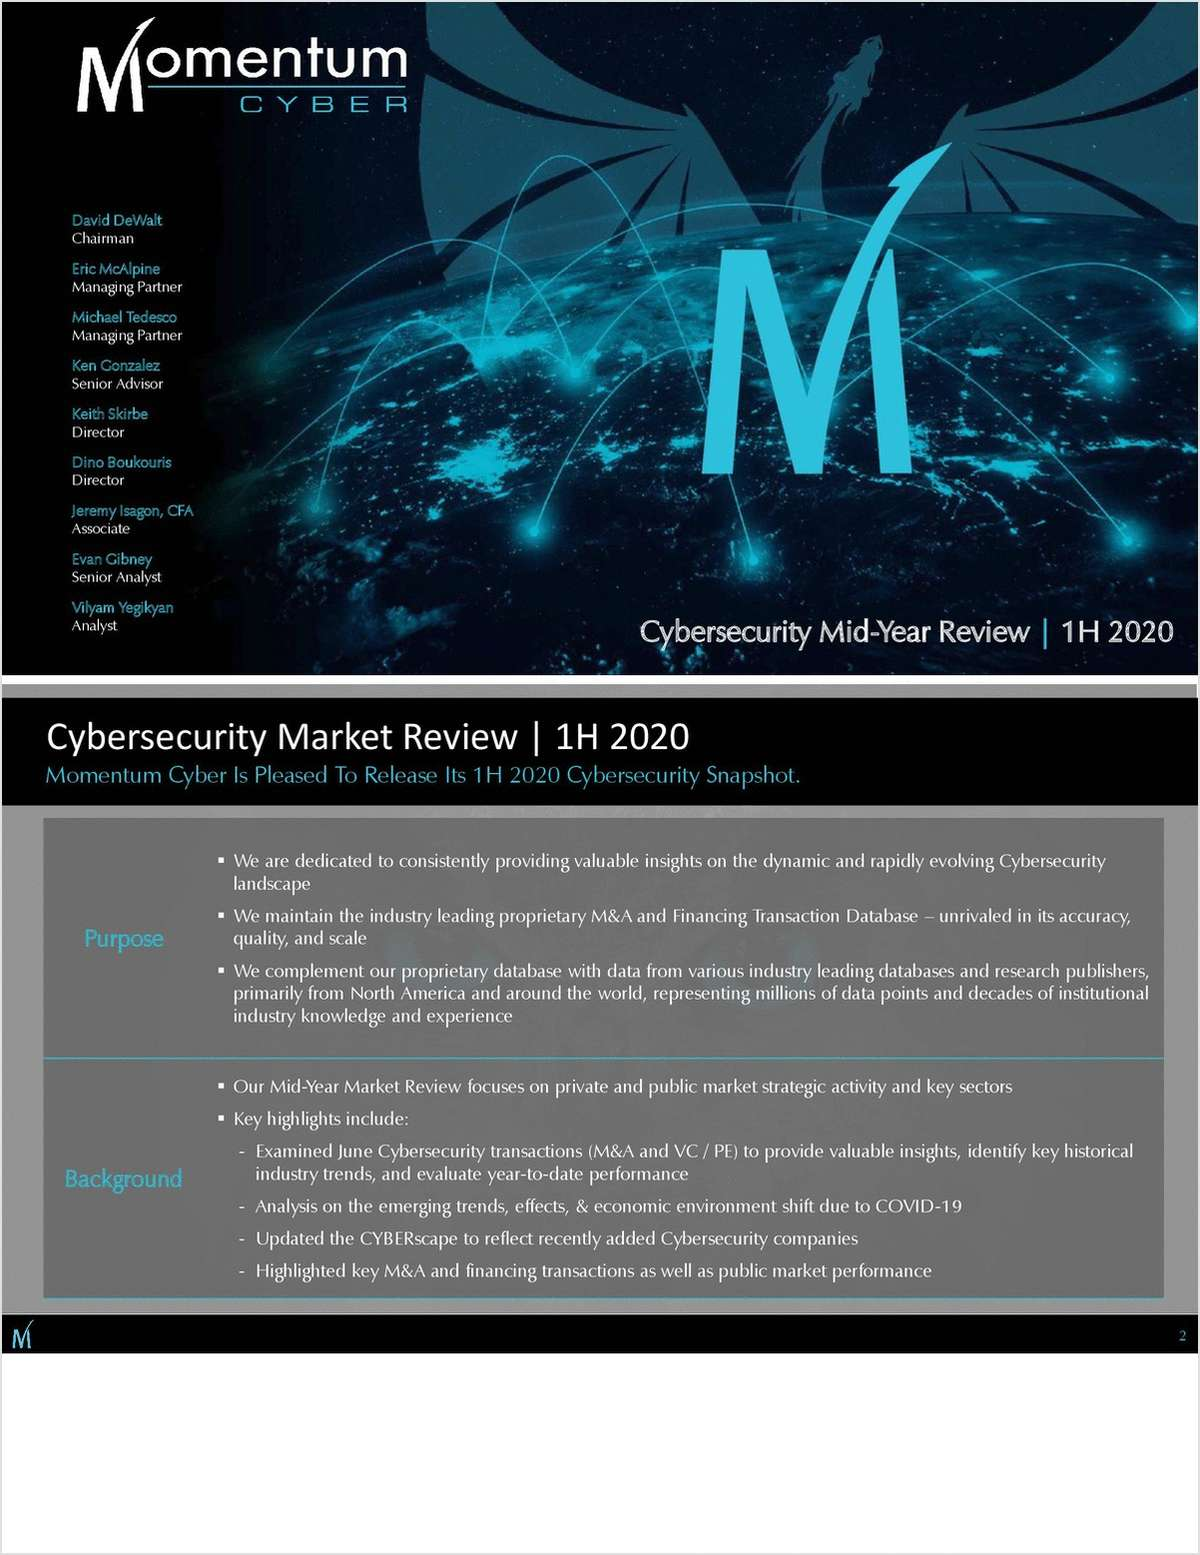 Cybersecurity Market Review - 1H 2020